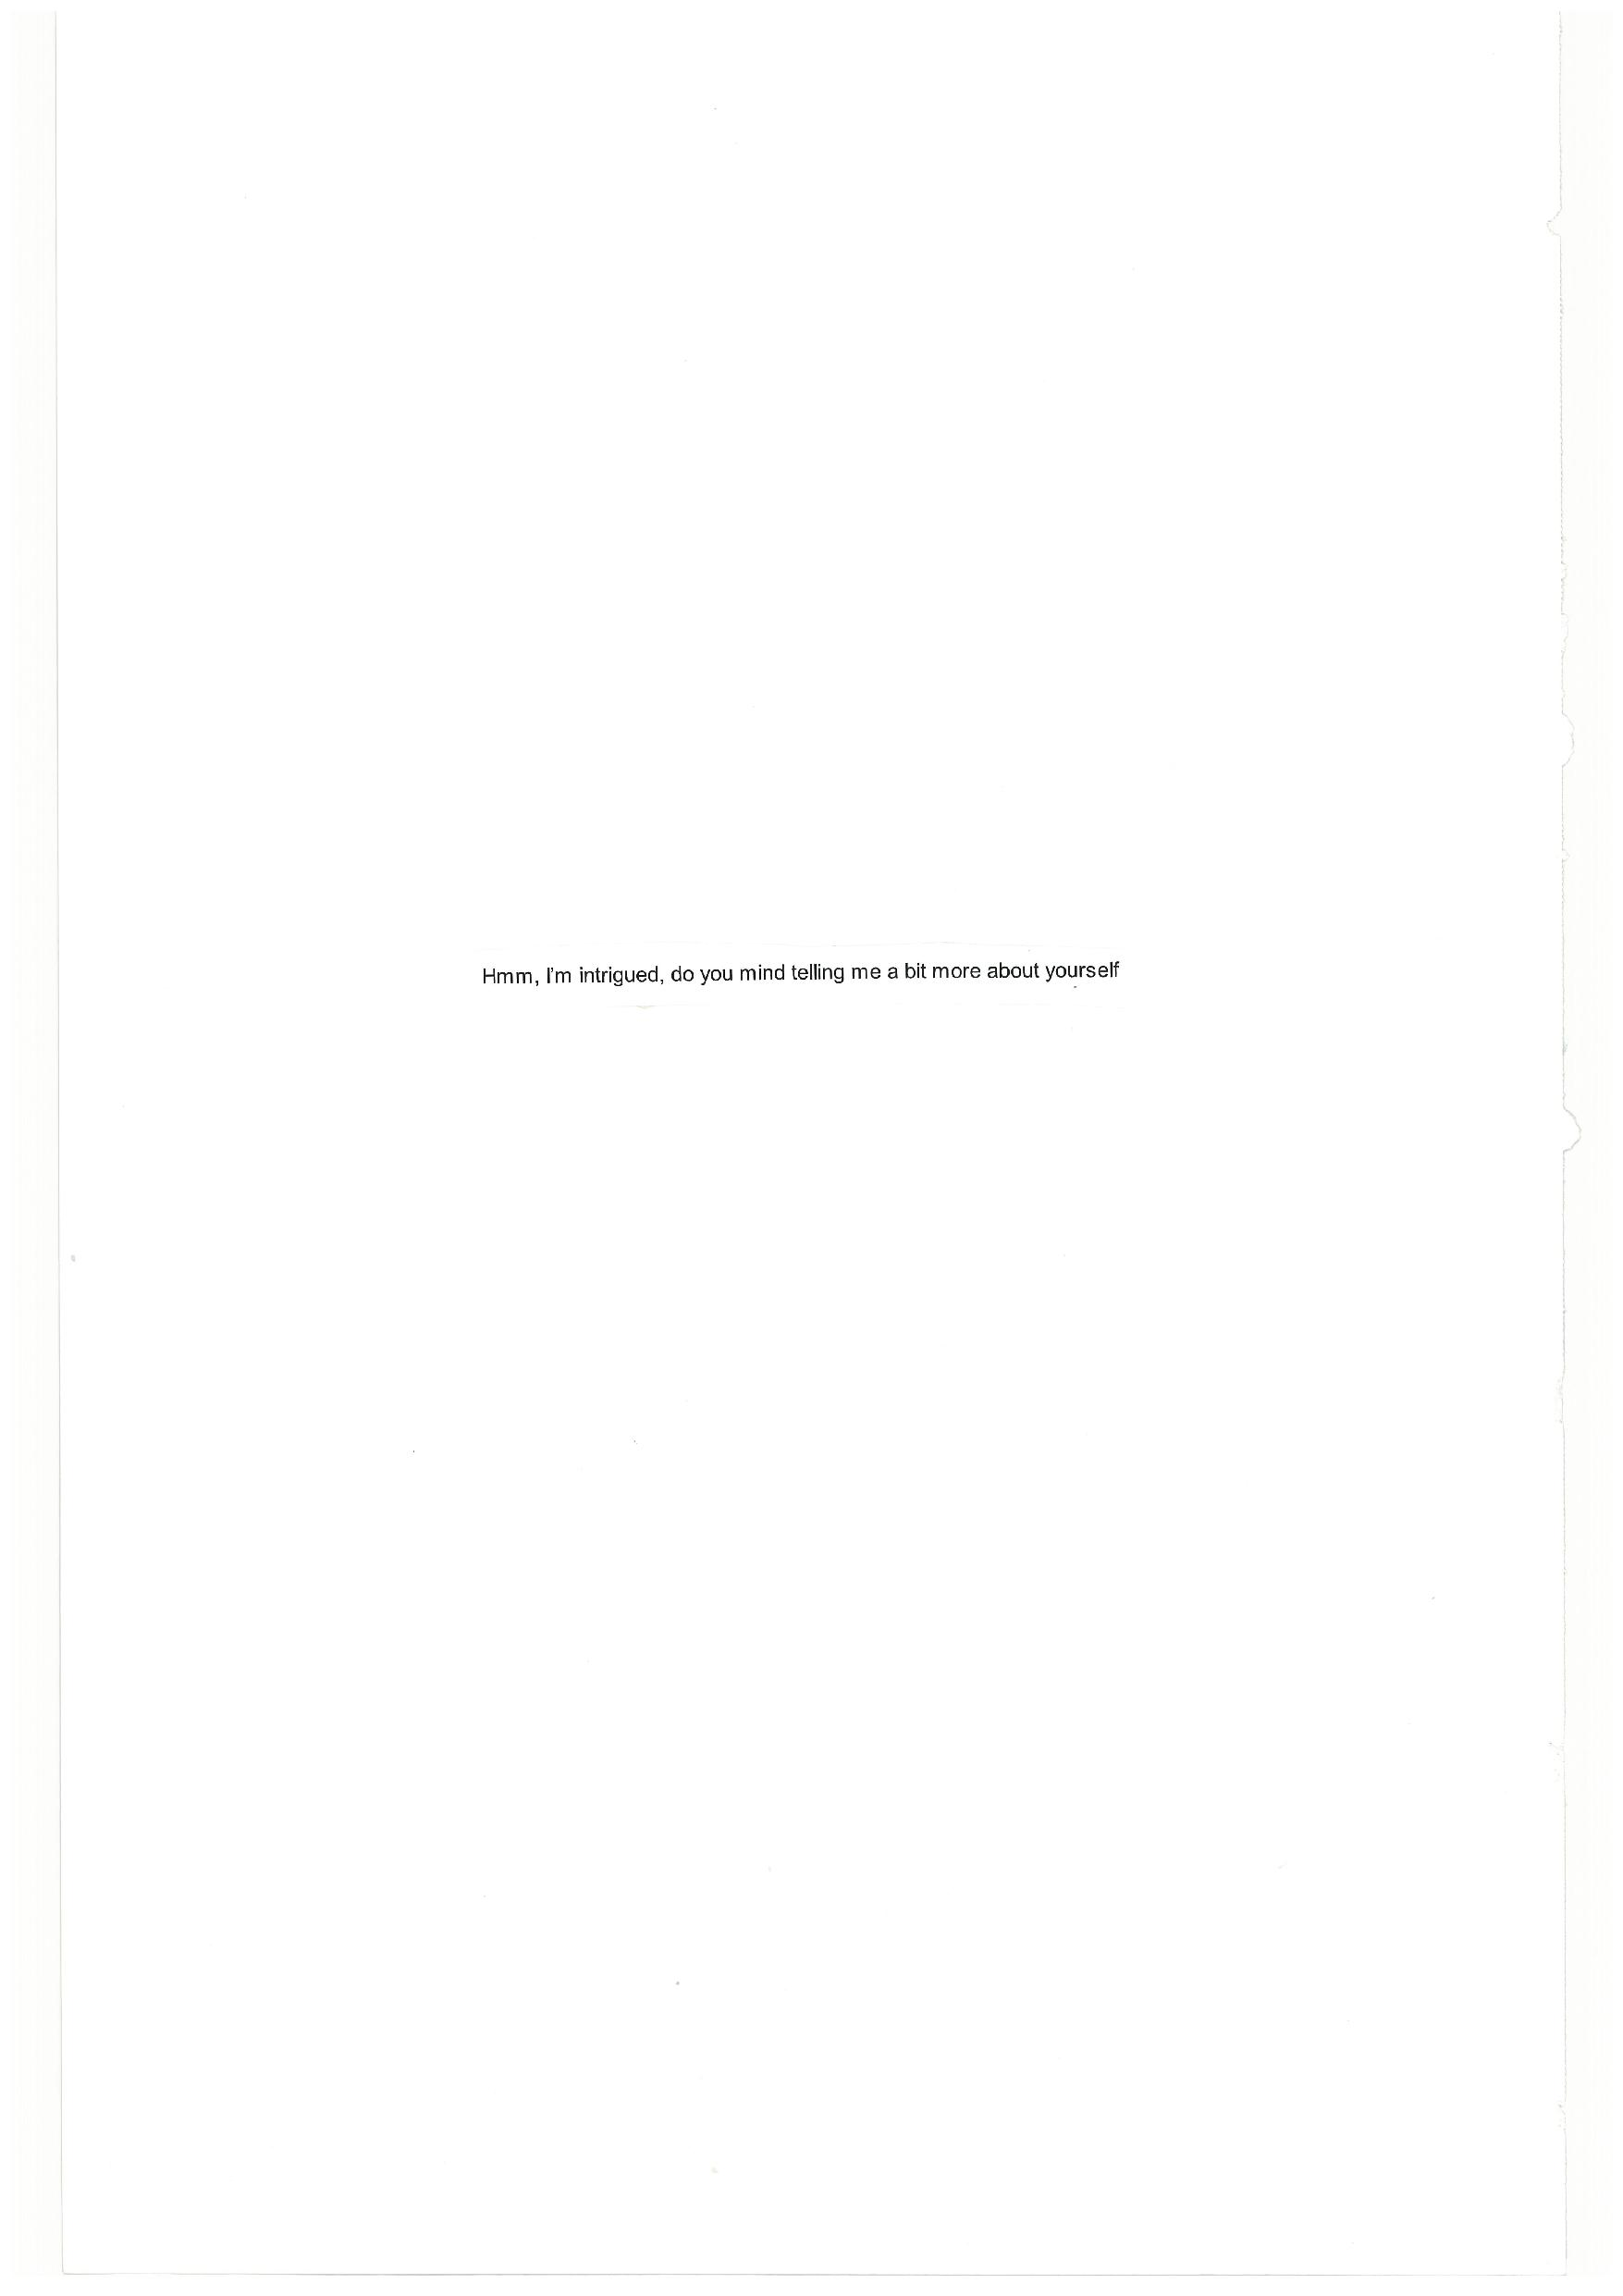 Emma-CeciliaAjanki Draft firstpages PAGE DANCE copy (dragged) 3-page-001.jpg